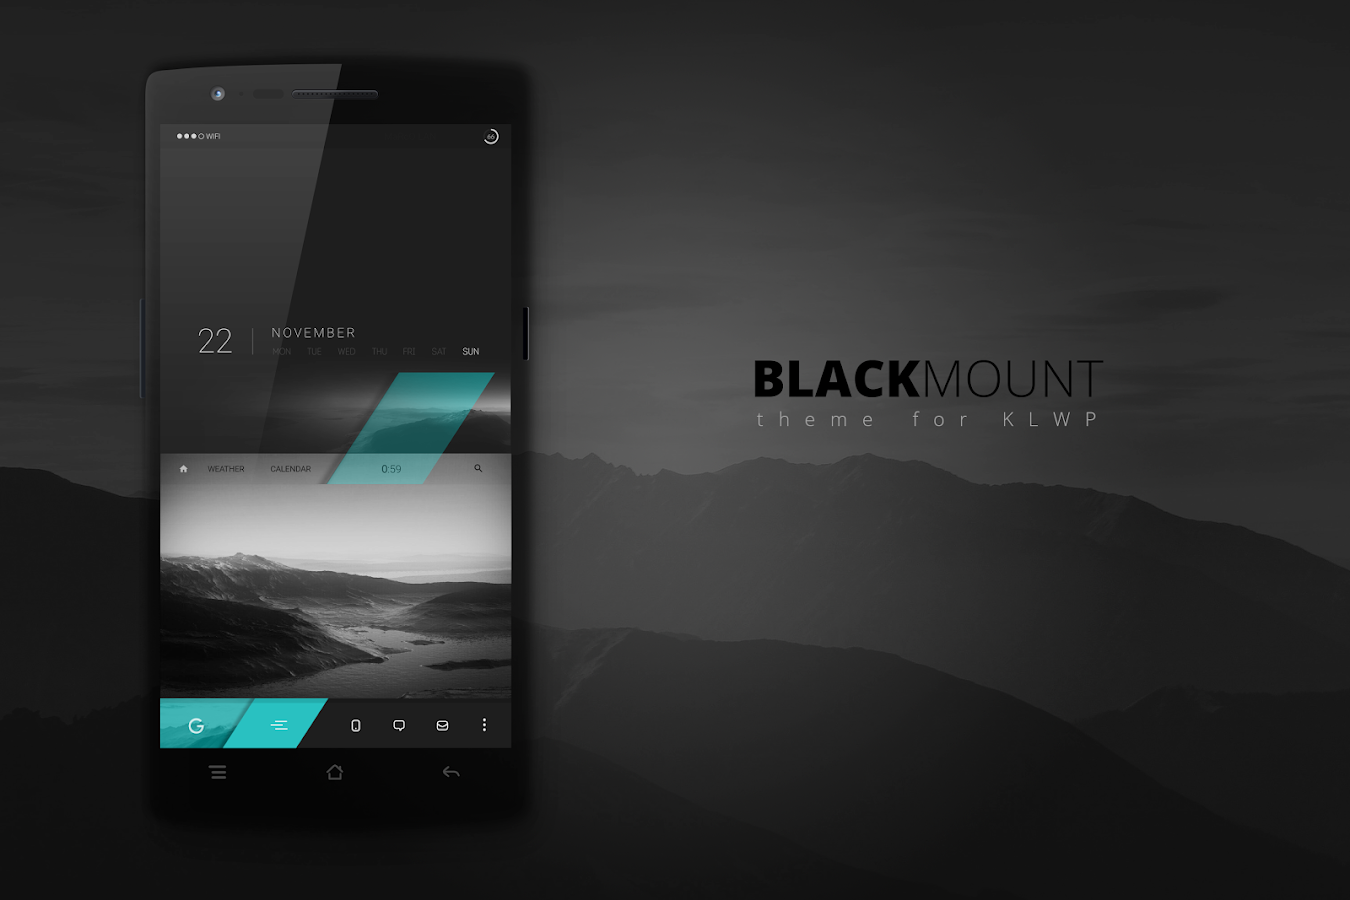 Blackmount theme for KLWP Screenshot 0